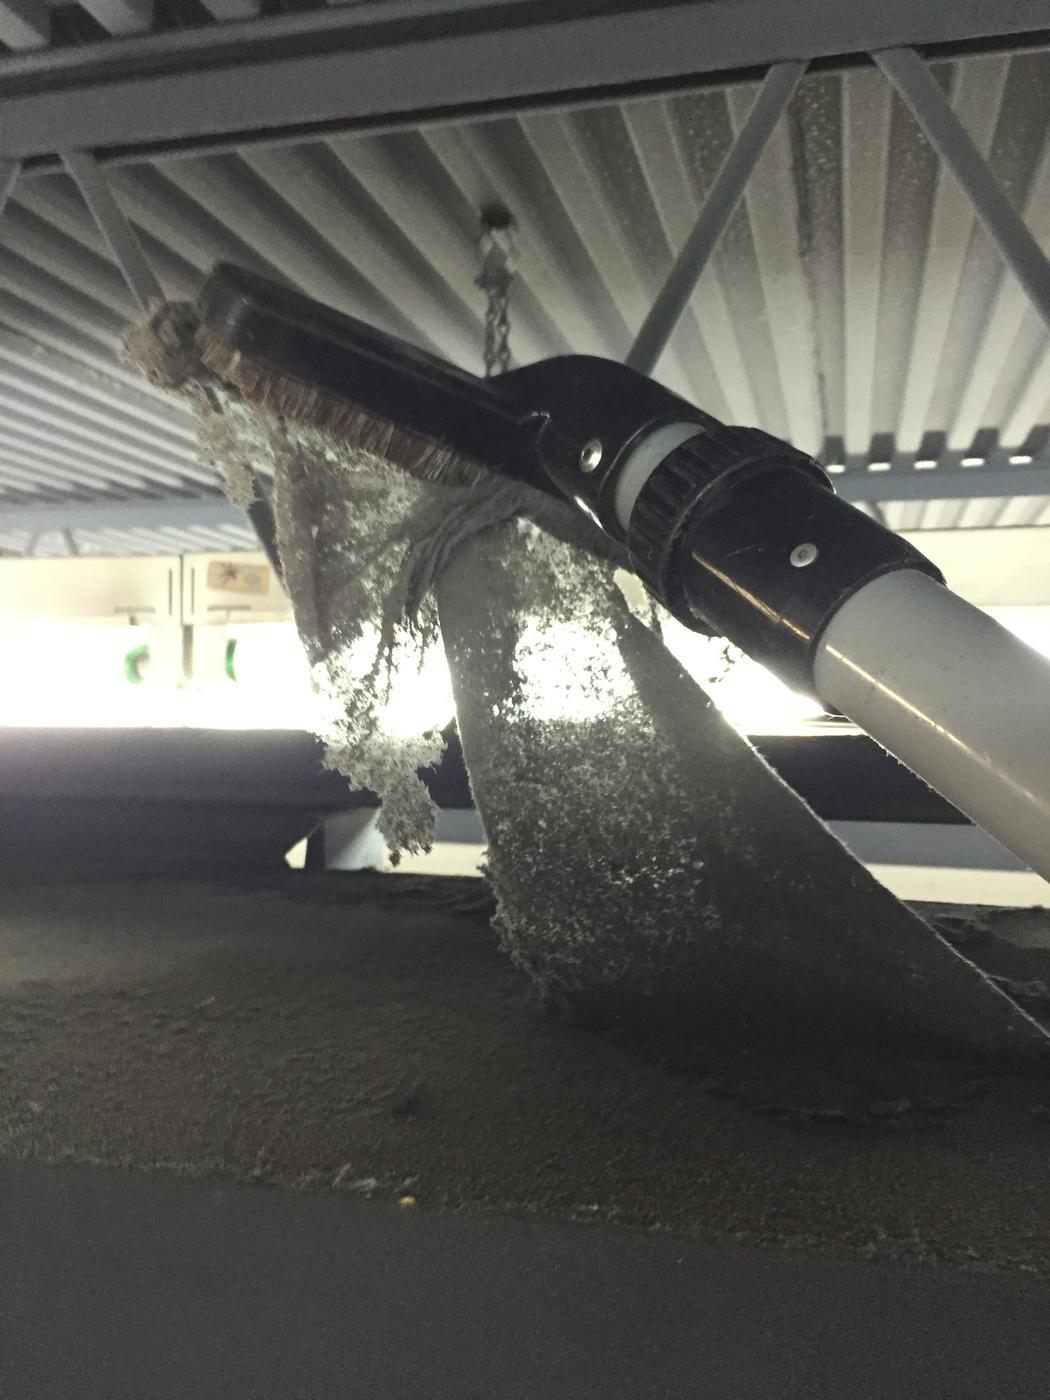 mold growth and dust accumulating in the air ducts of a Miramar, FL building